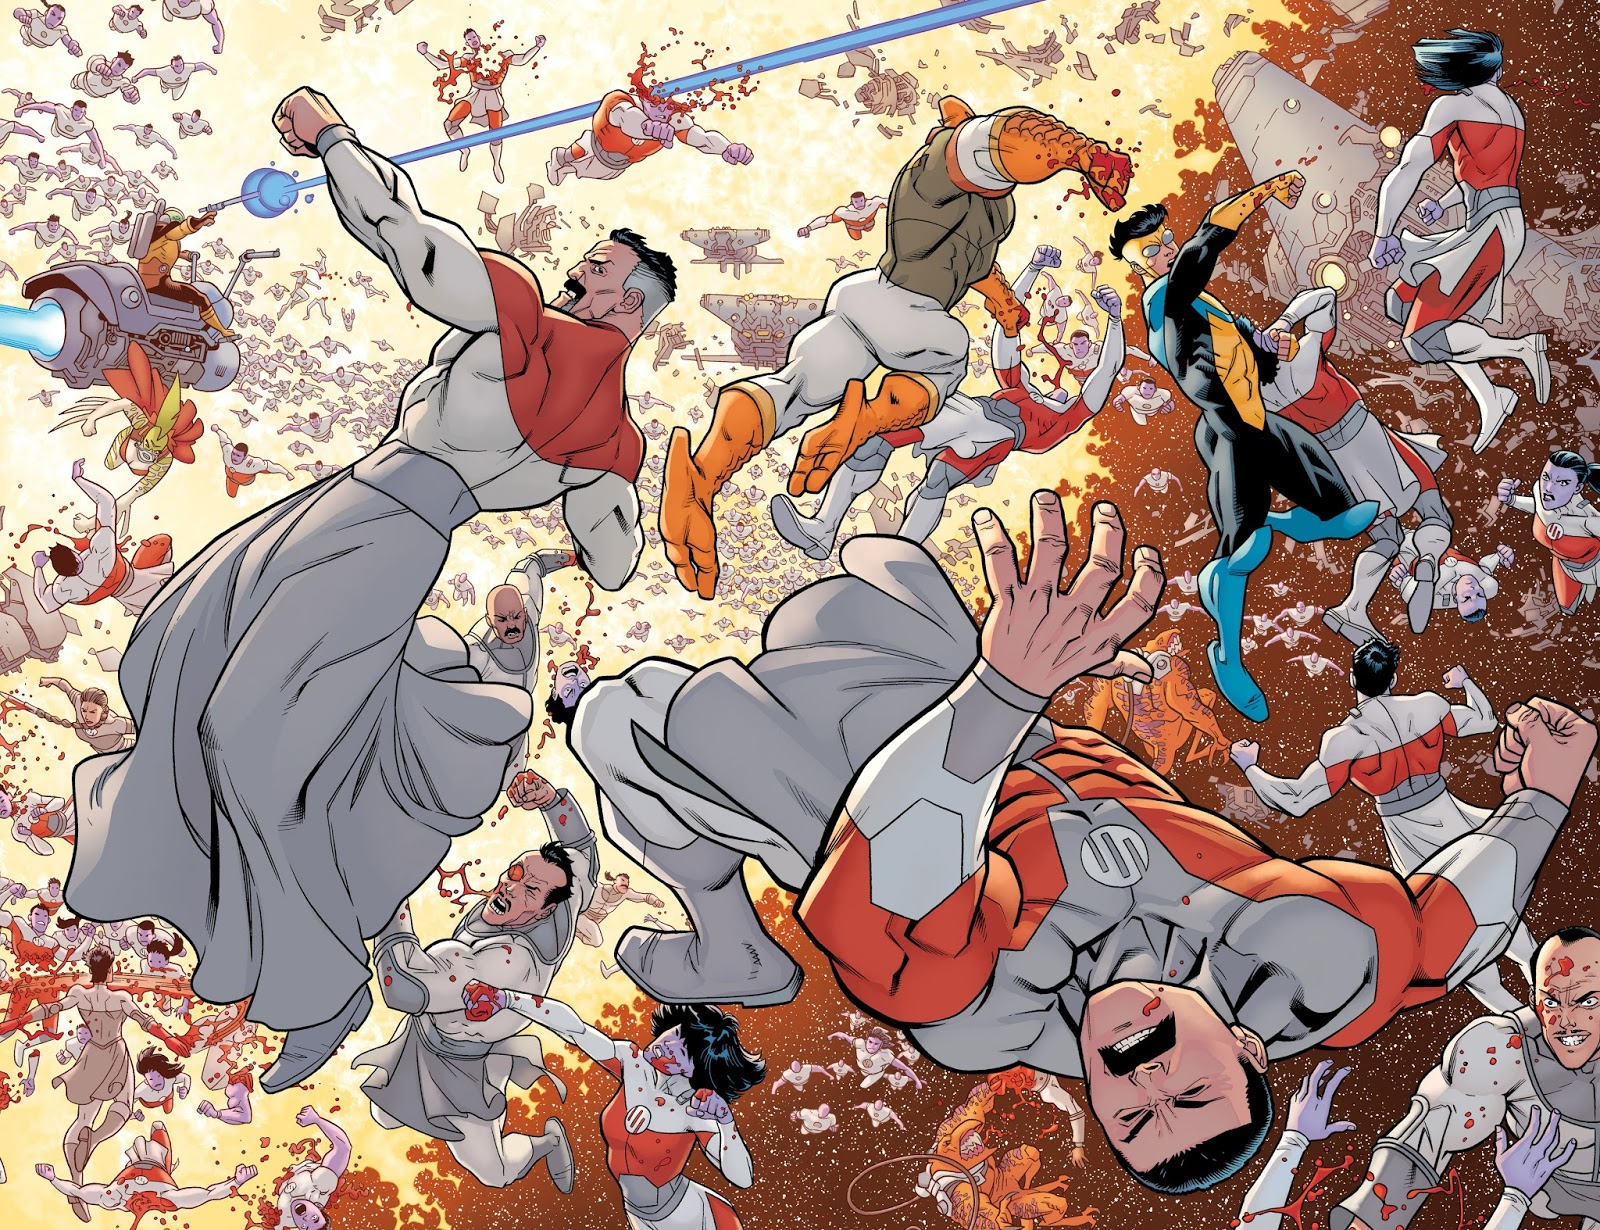 Invincible 24 The End of all Things review